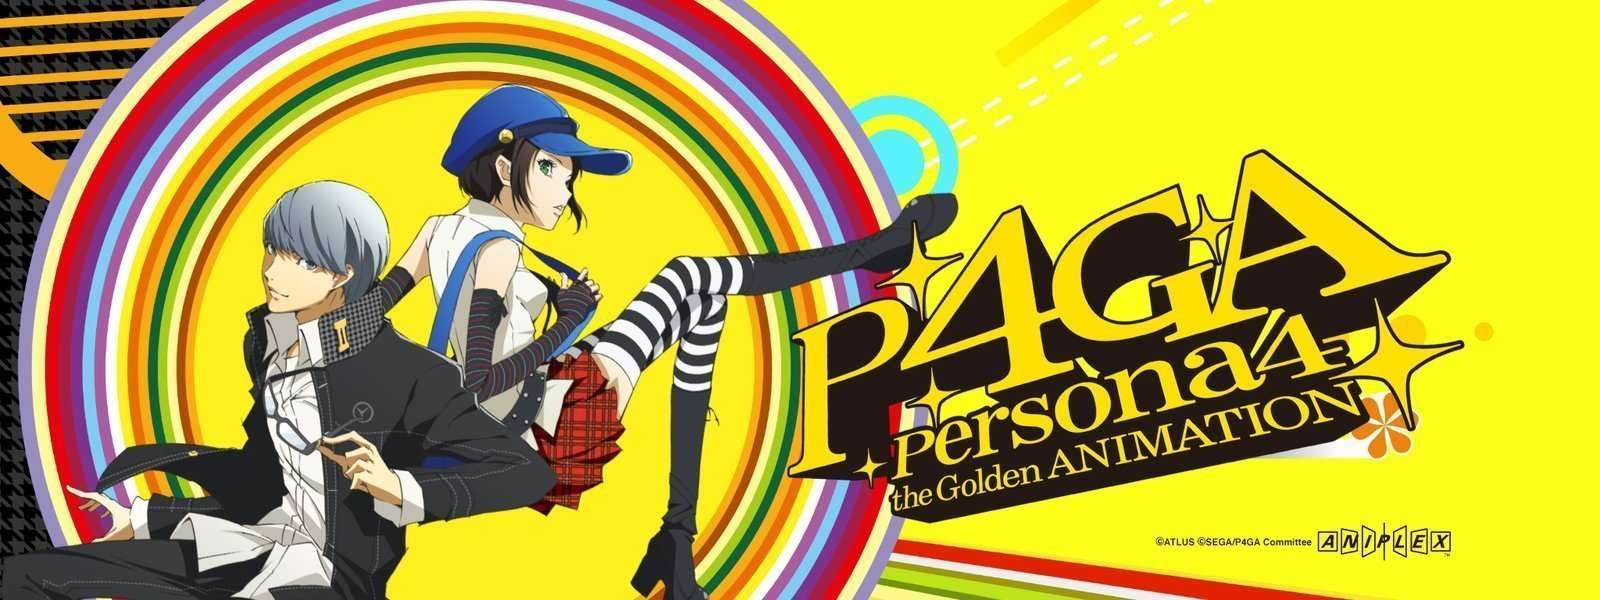 ãPersona4 the Golden ANIMATIONãã®ç»åæ¤ç´¢çµæ